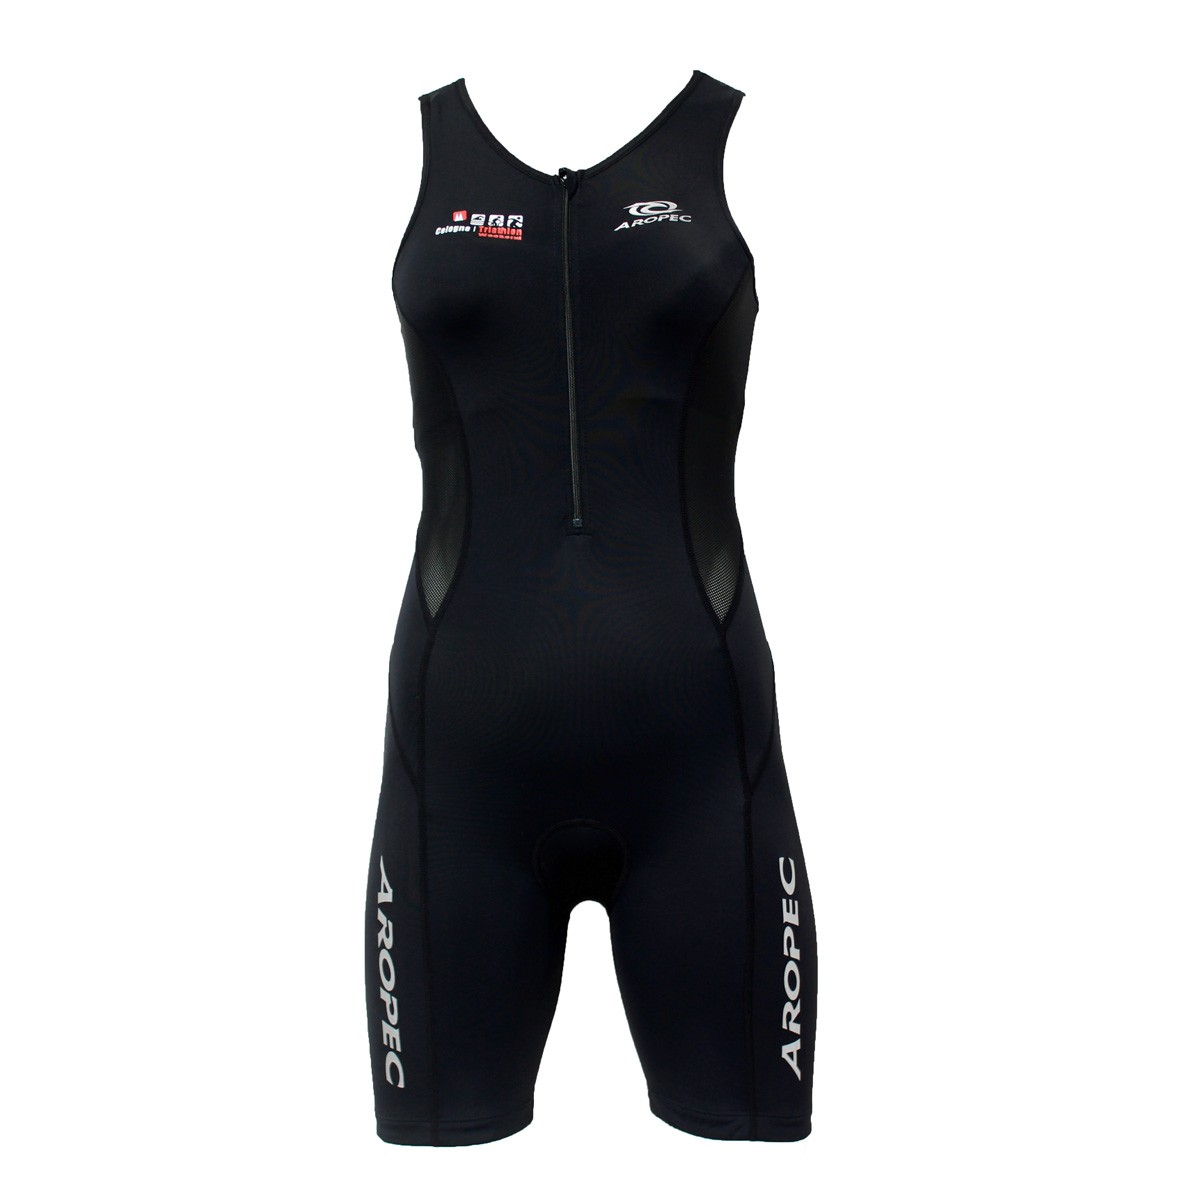 Aropec evolution black Triathlon Einteiler Damen - CTW Edition